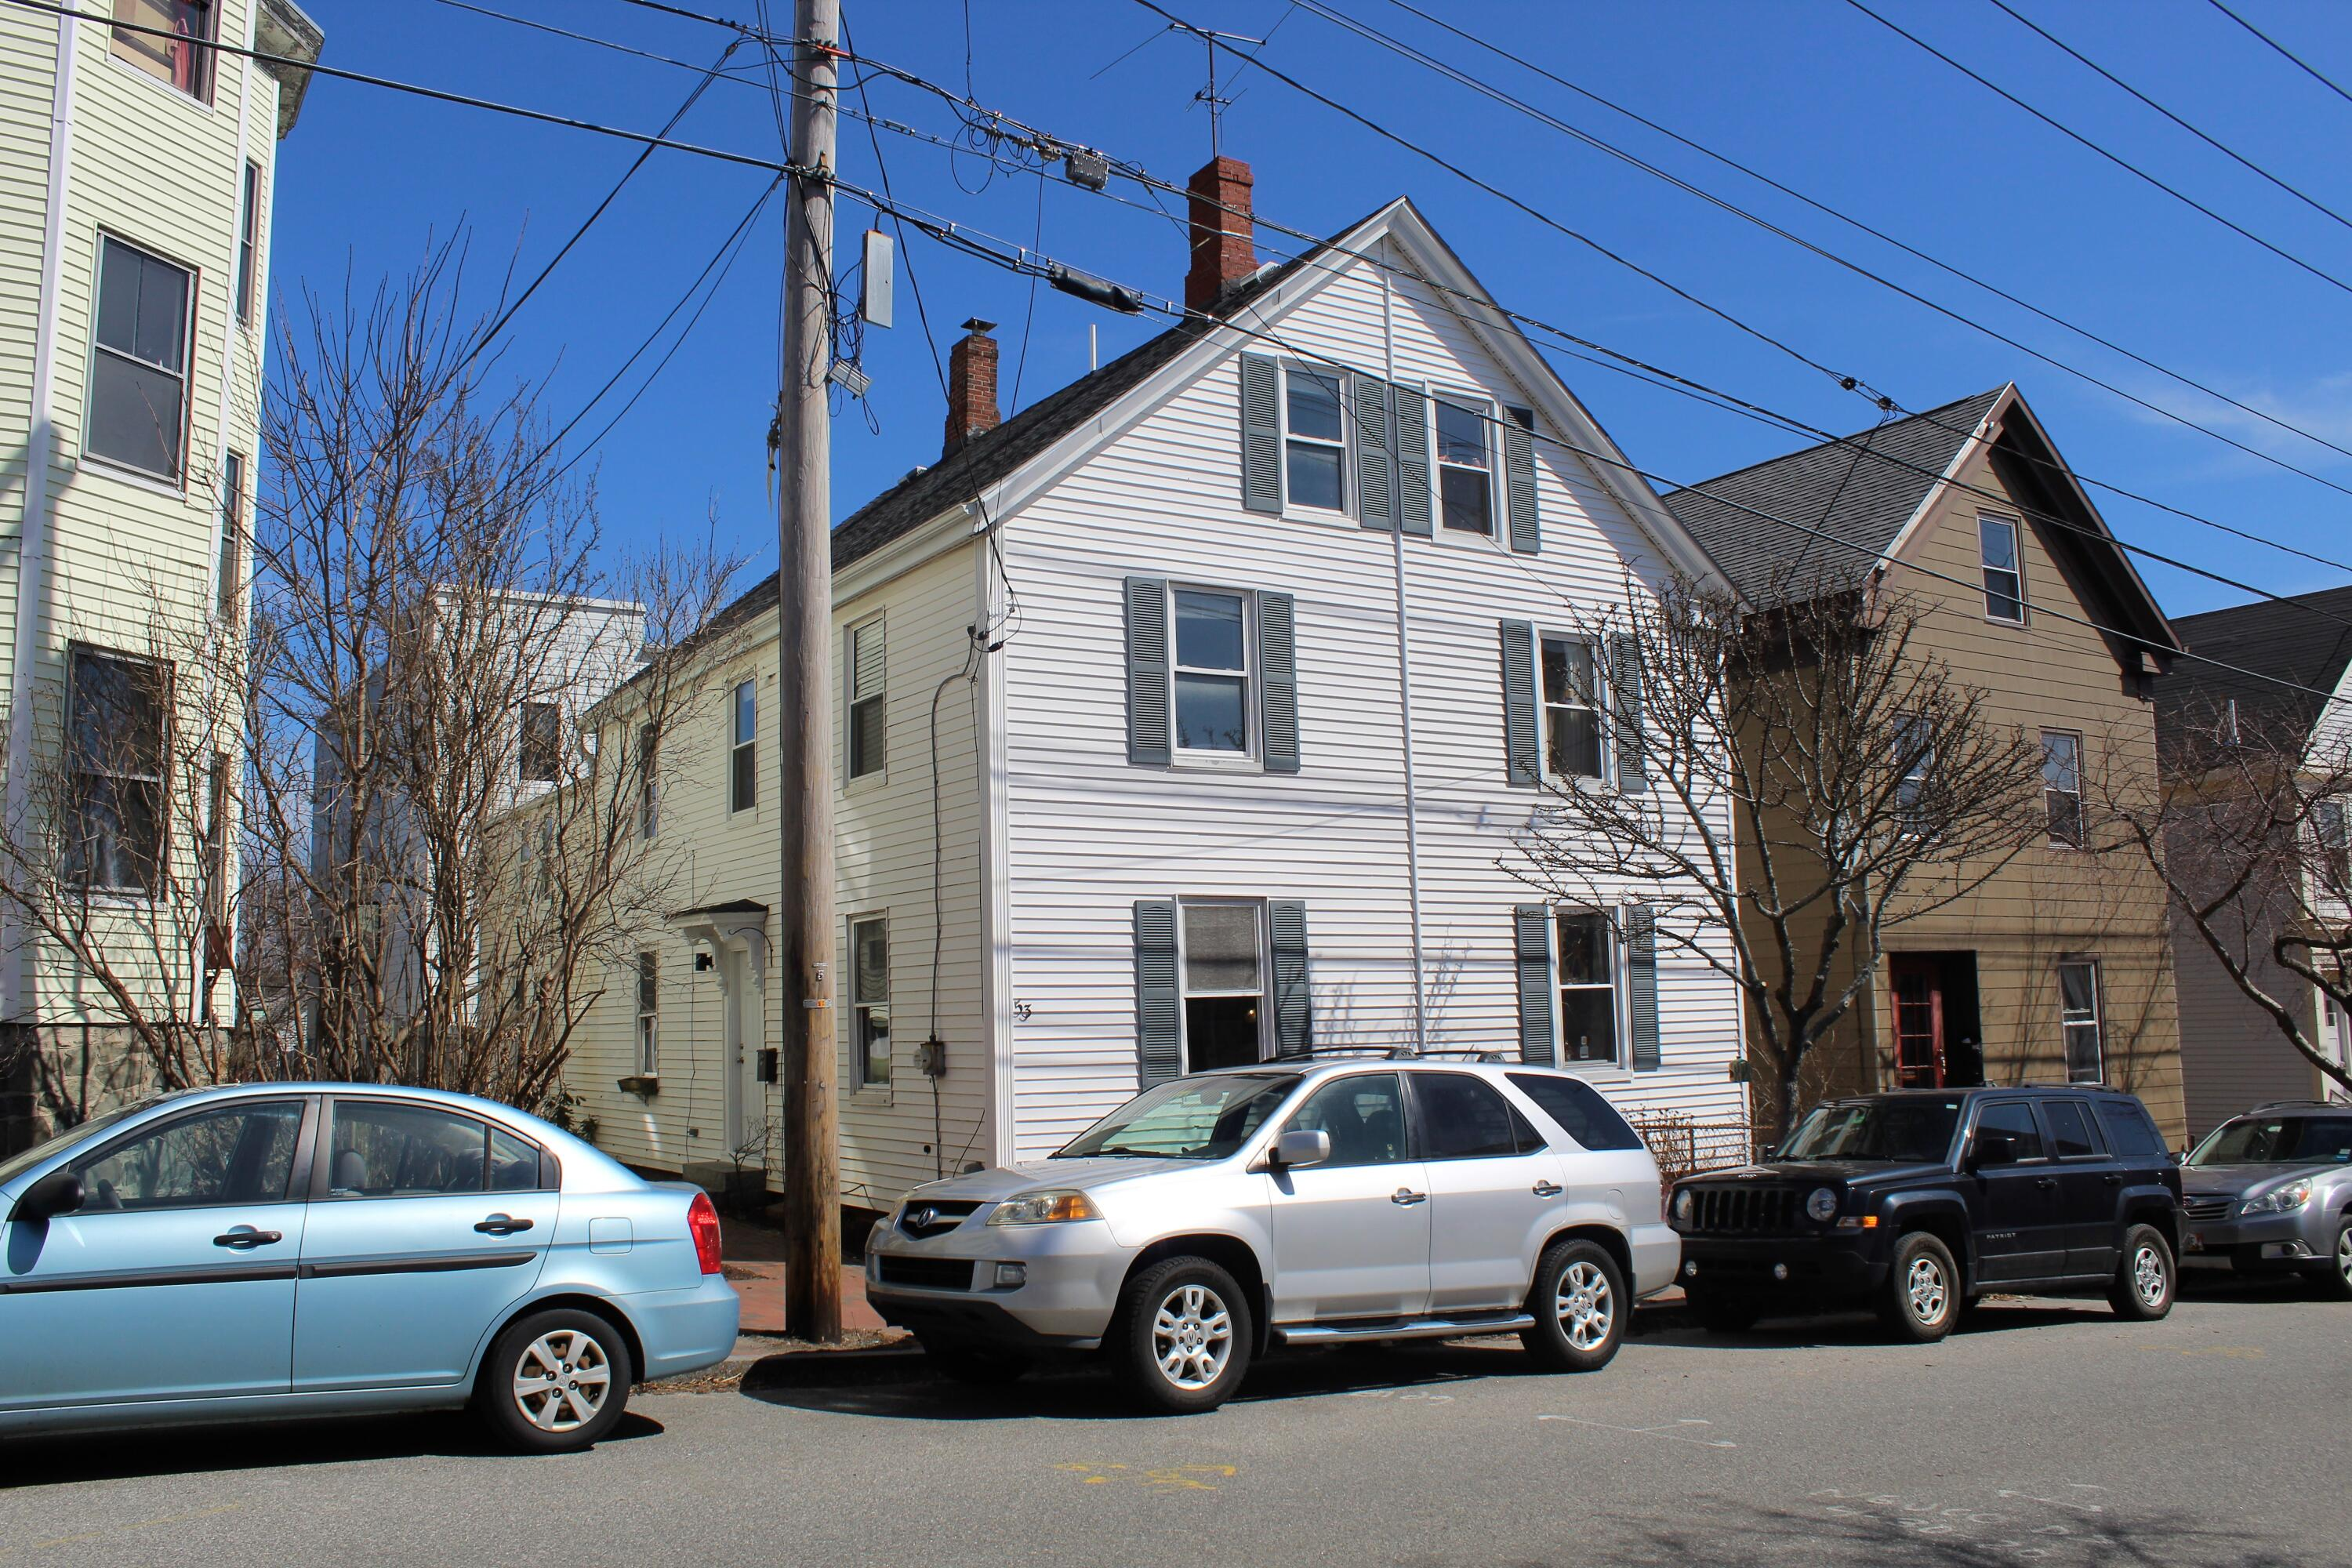 Main image for MLS listing 1485345